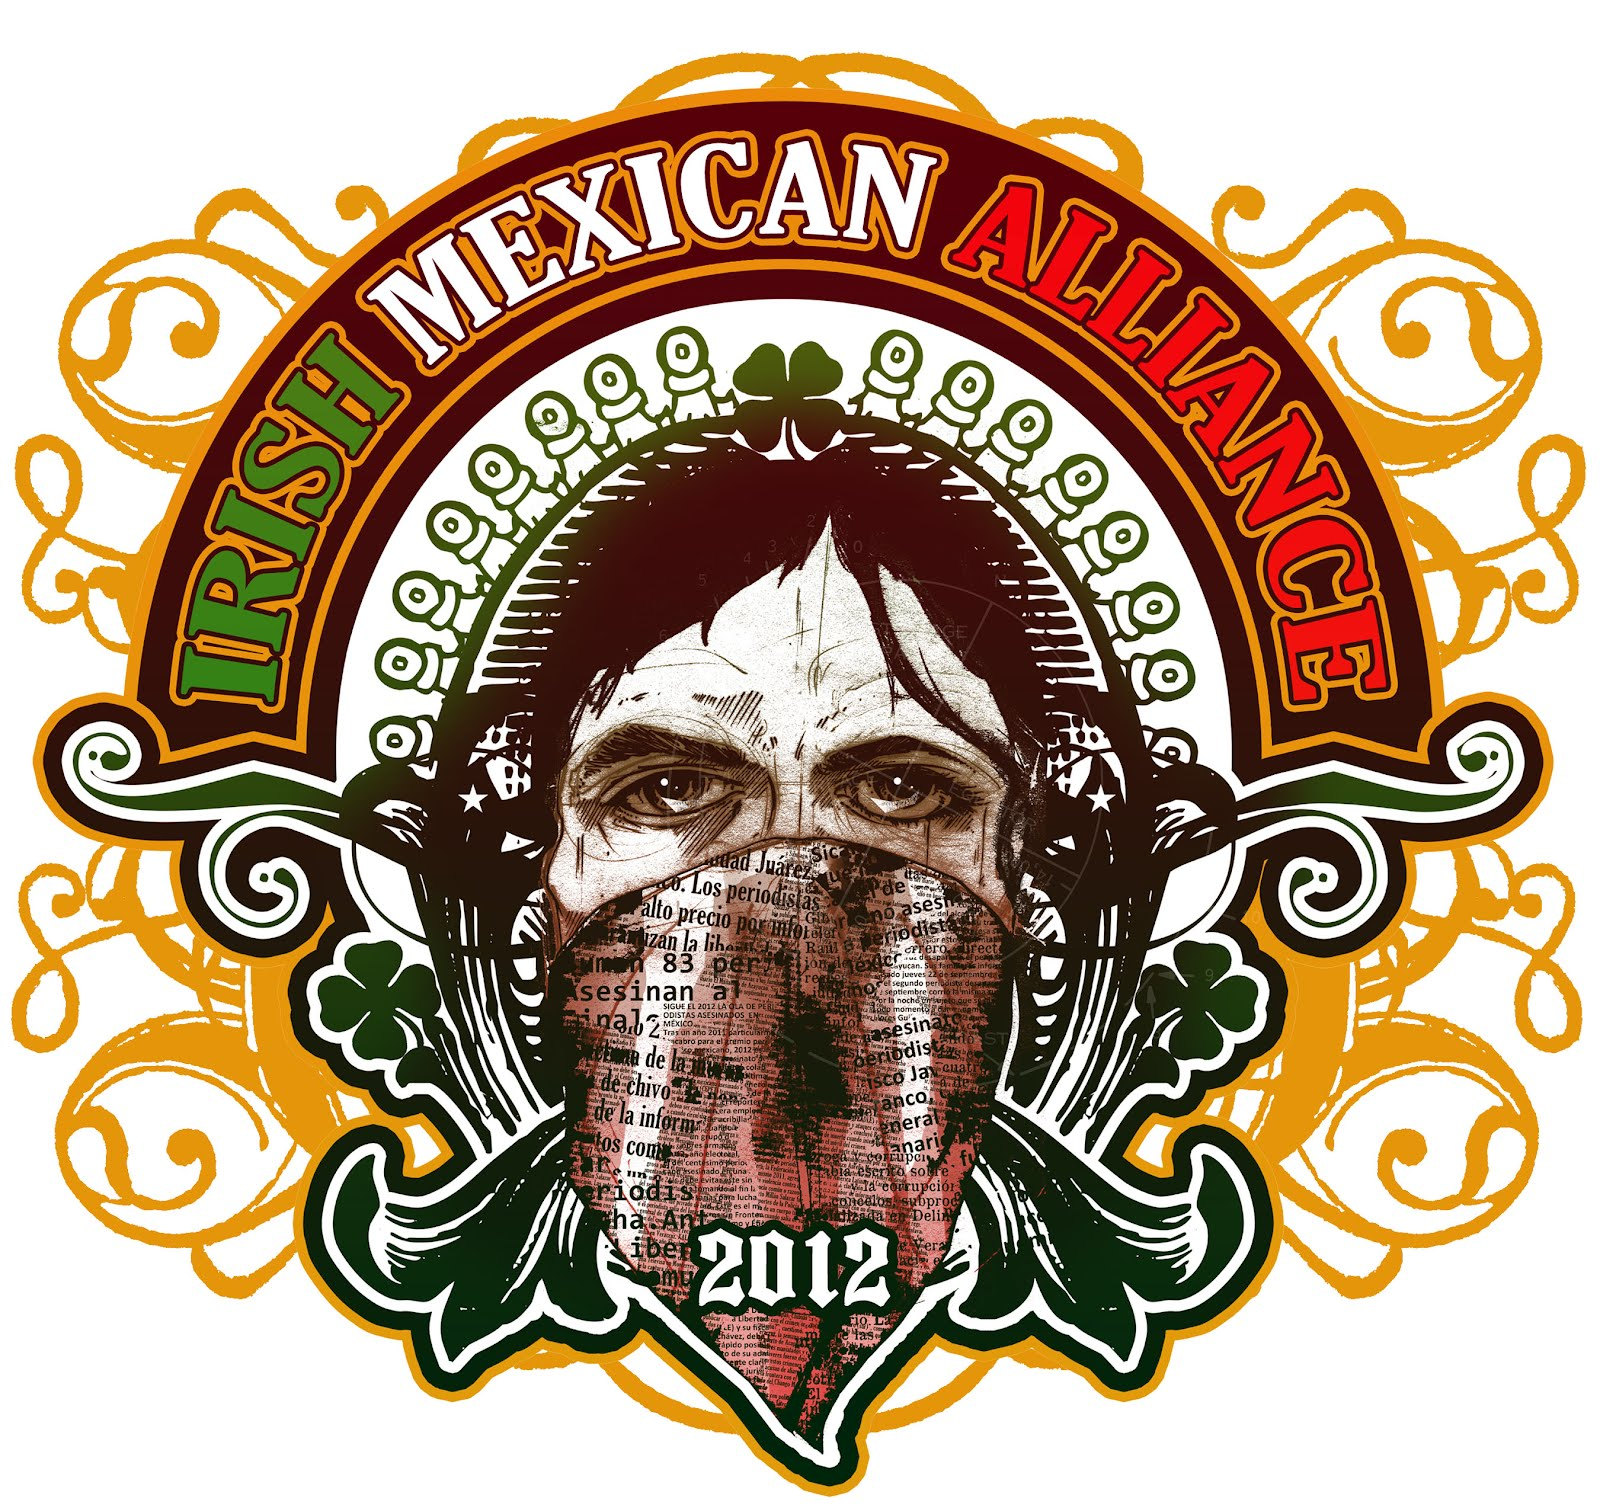 Tj english online what is the irish mexican alliance the irish mexican alliance was inaugurated in october 2010 in new york city by a group of irish american and latino artists and activists buycottarizona Choice Image